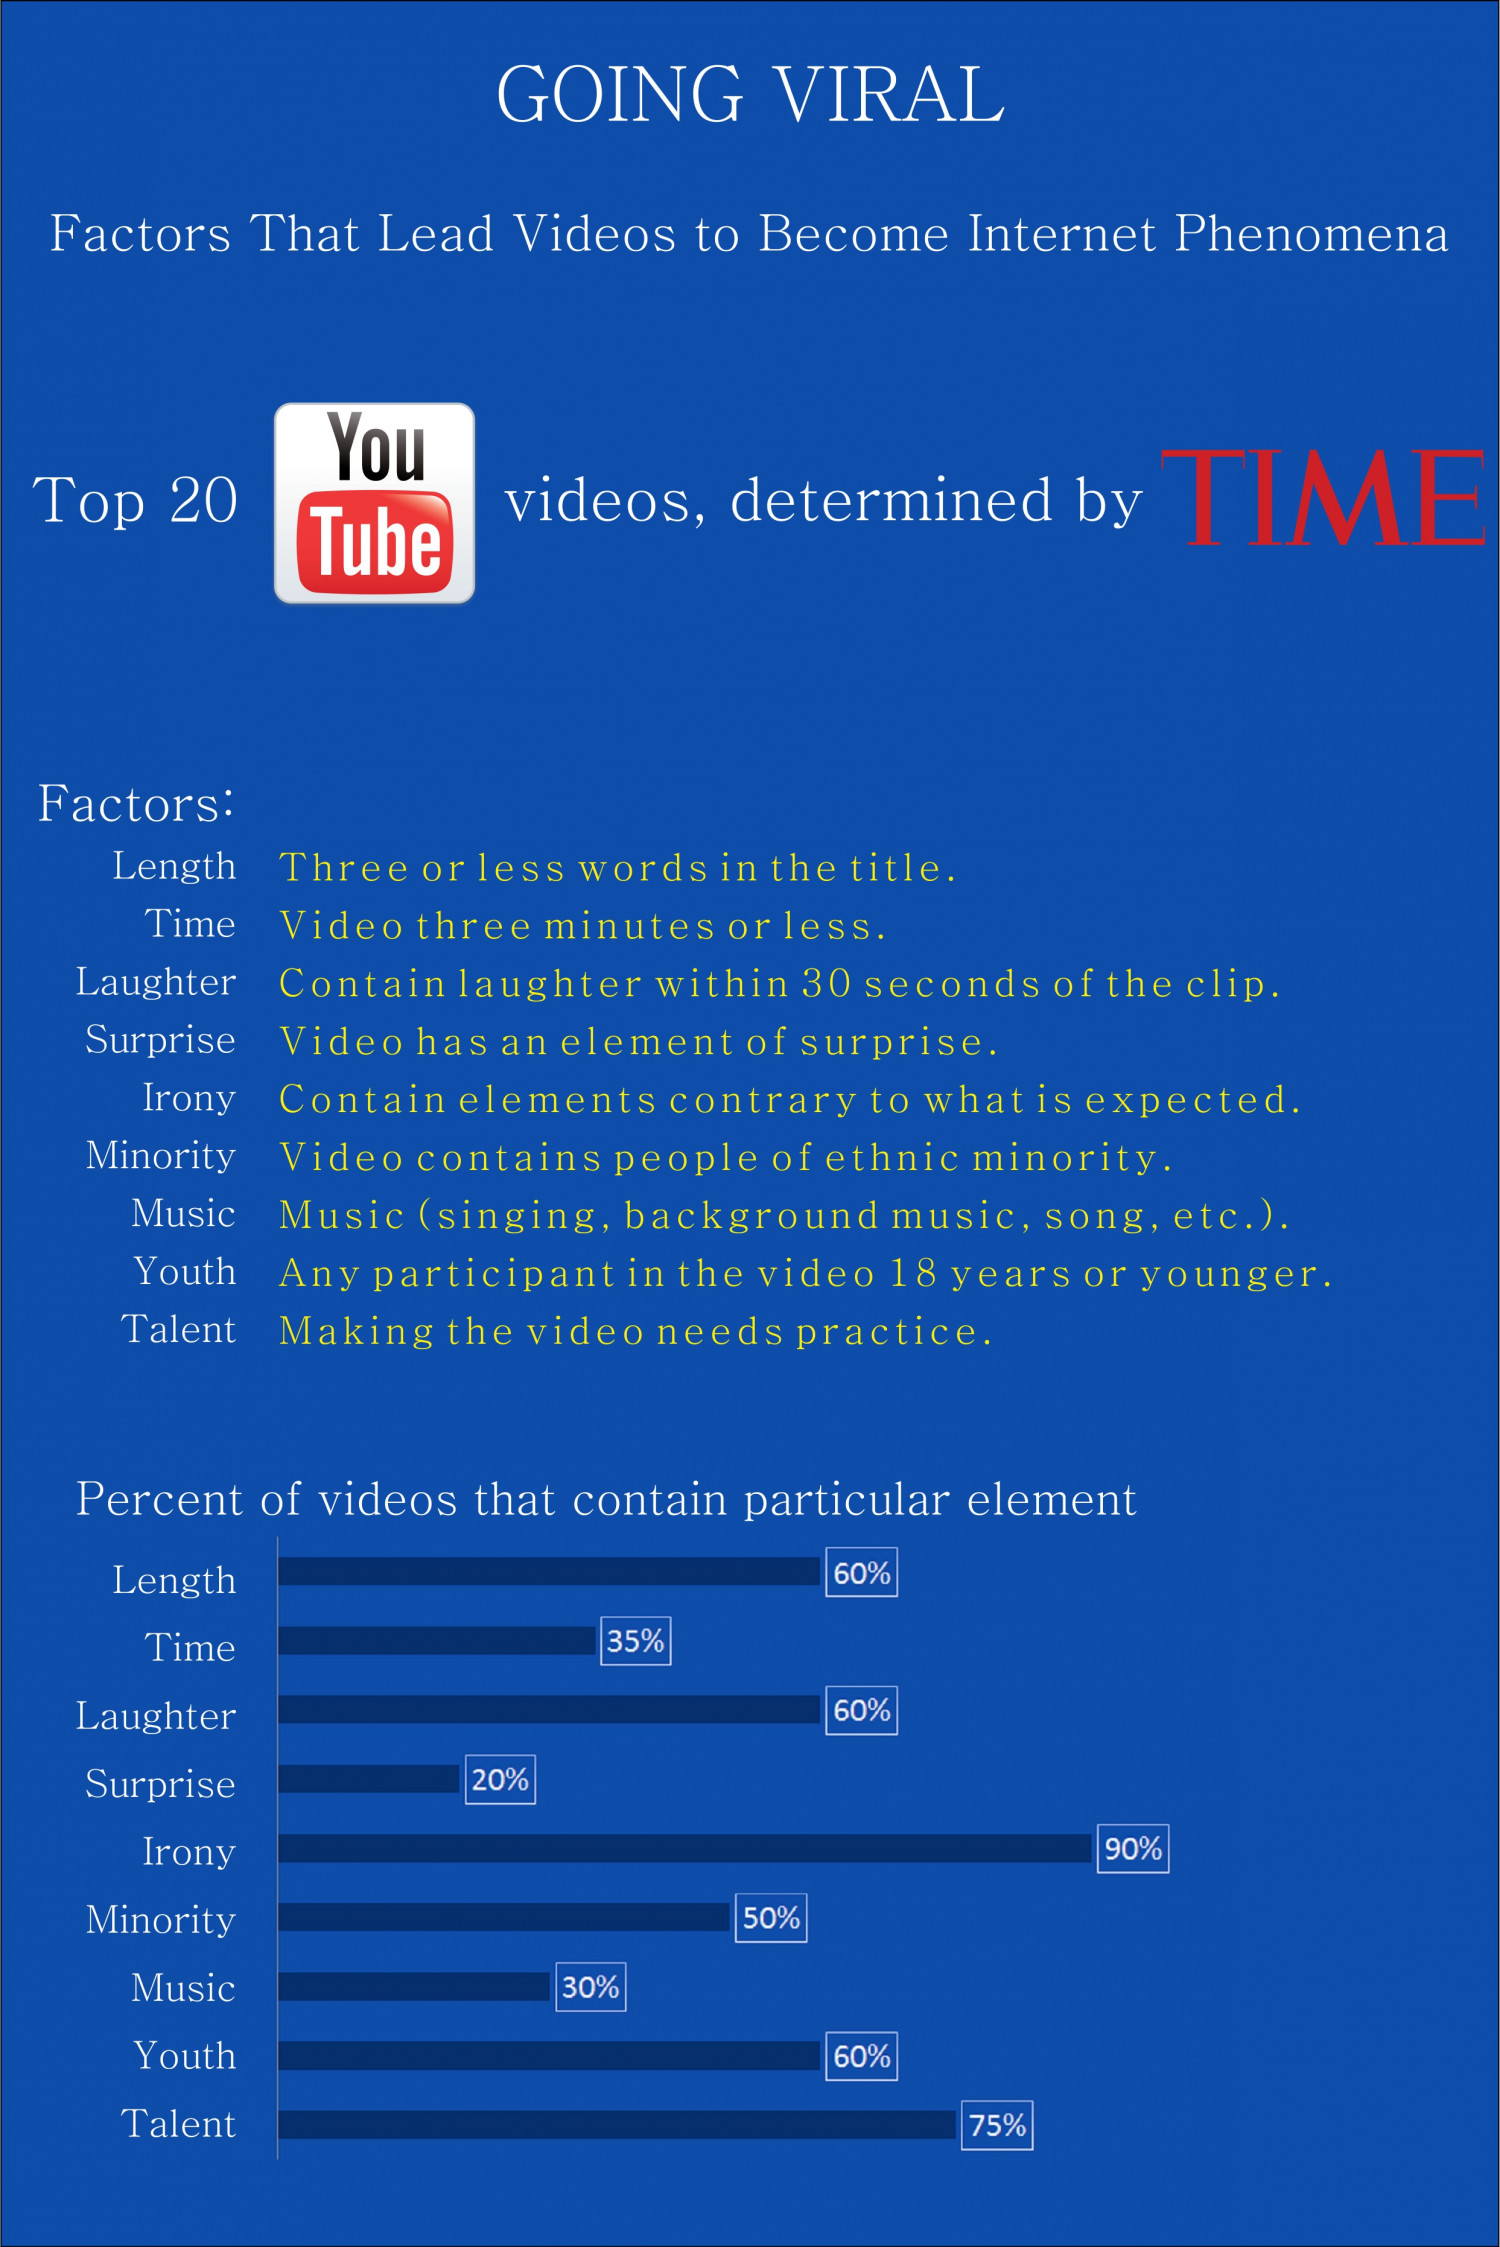 Going Viral - Factors That Lead Videos to Become Internet Phenomena Infographic